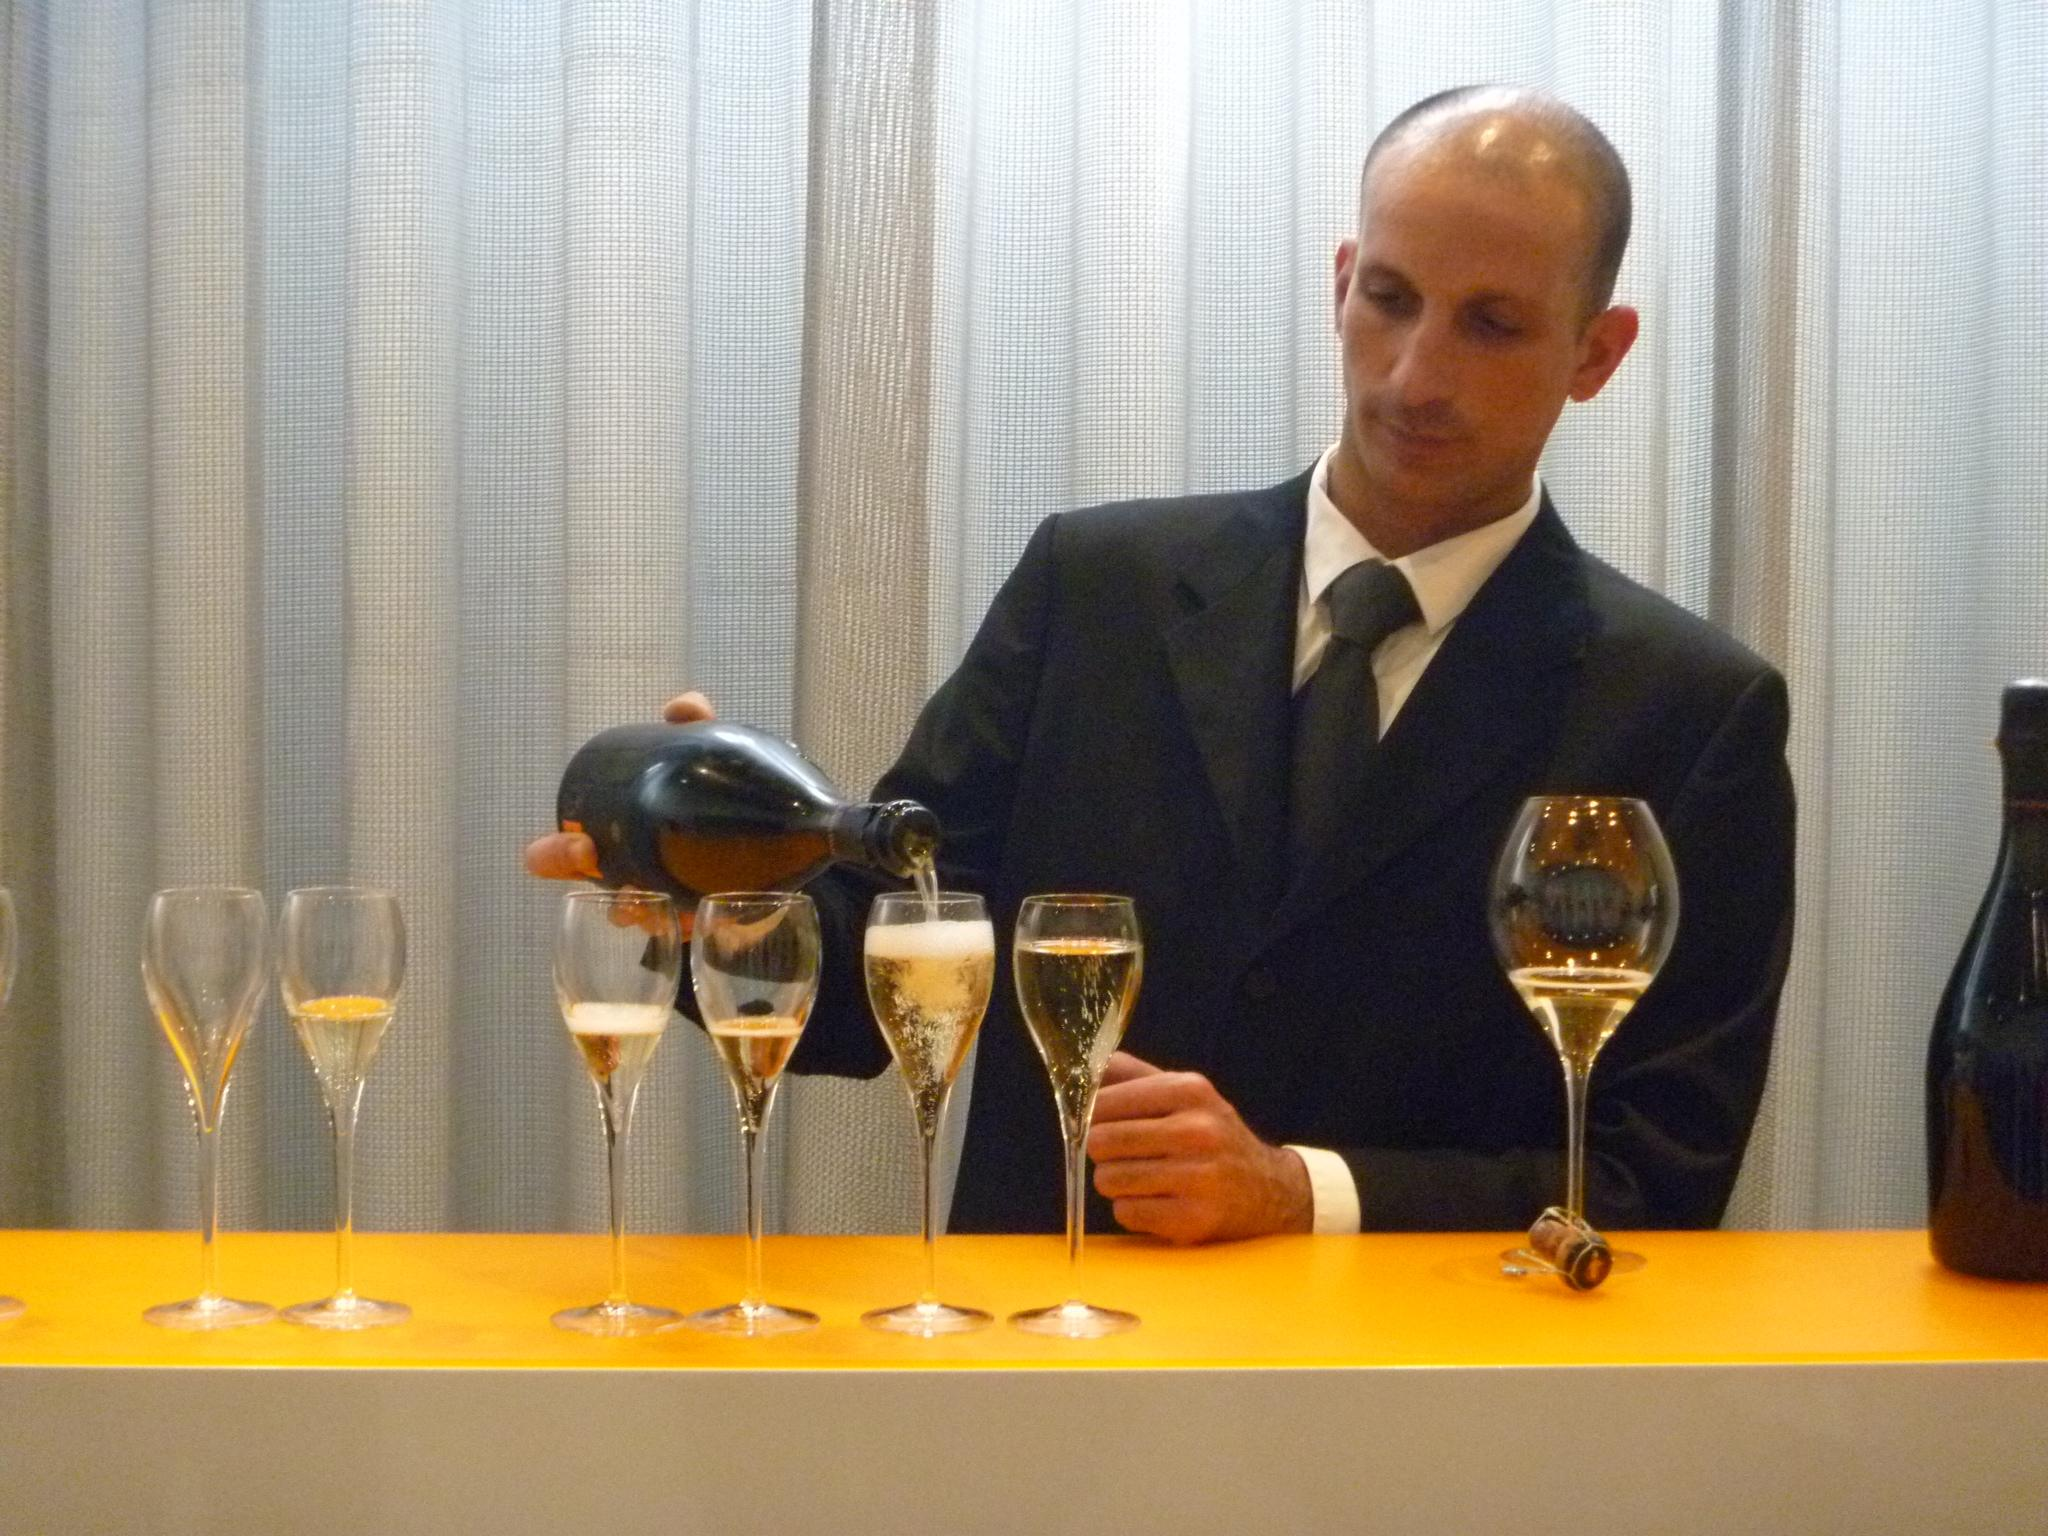 Tasting La Grande Dame at Veuve Clicquot. Photo by Natalie Potter.